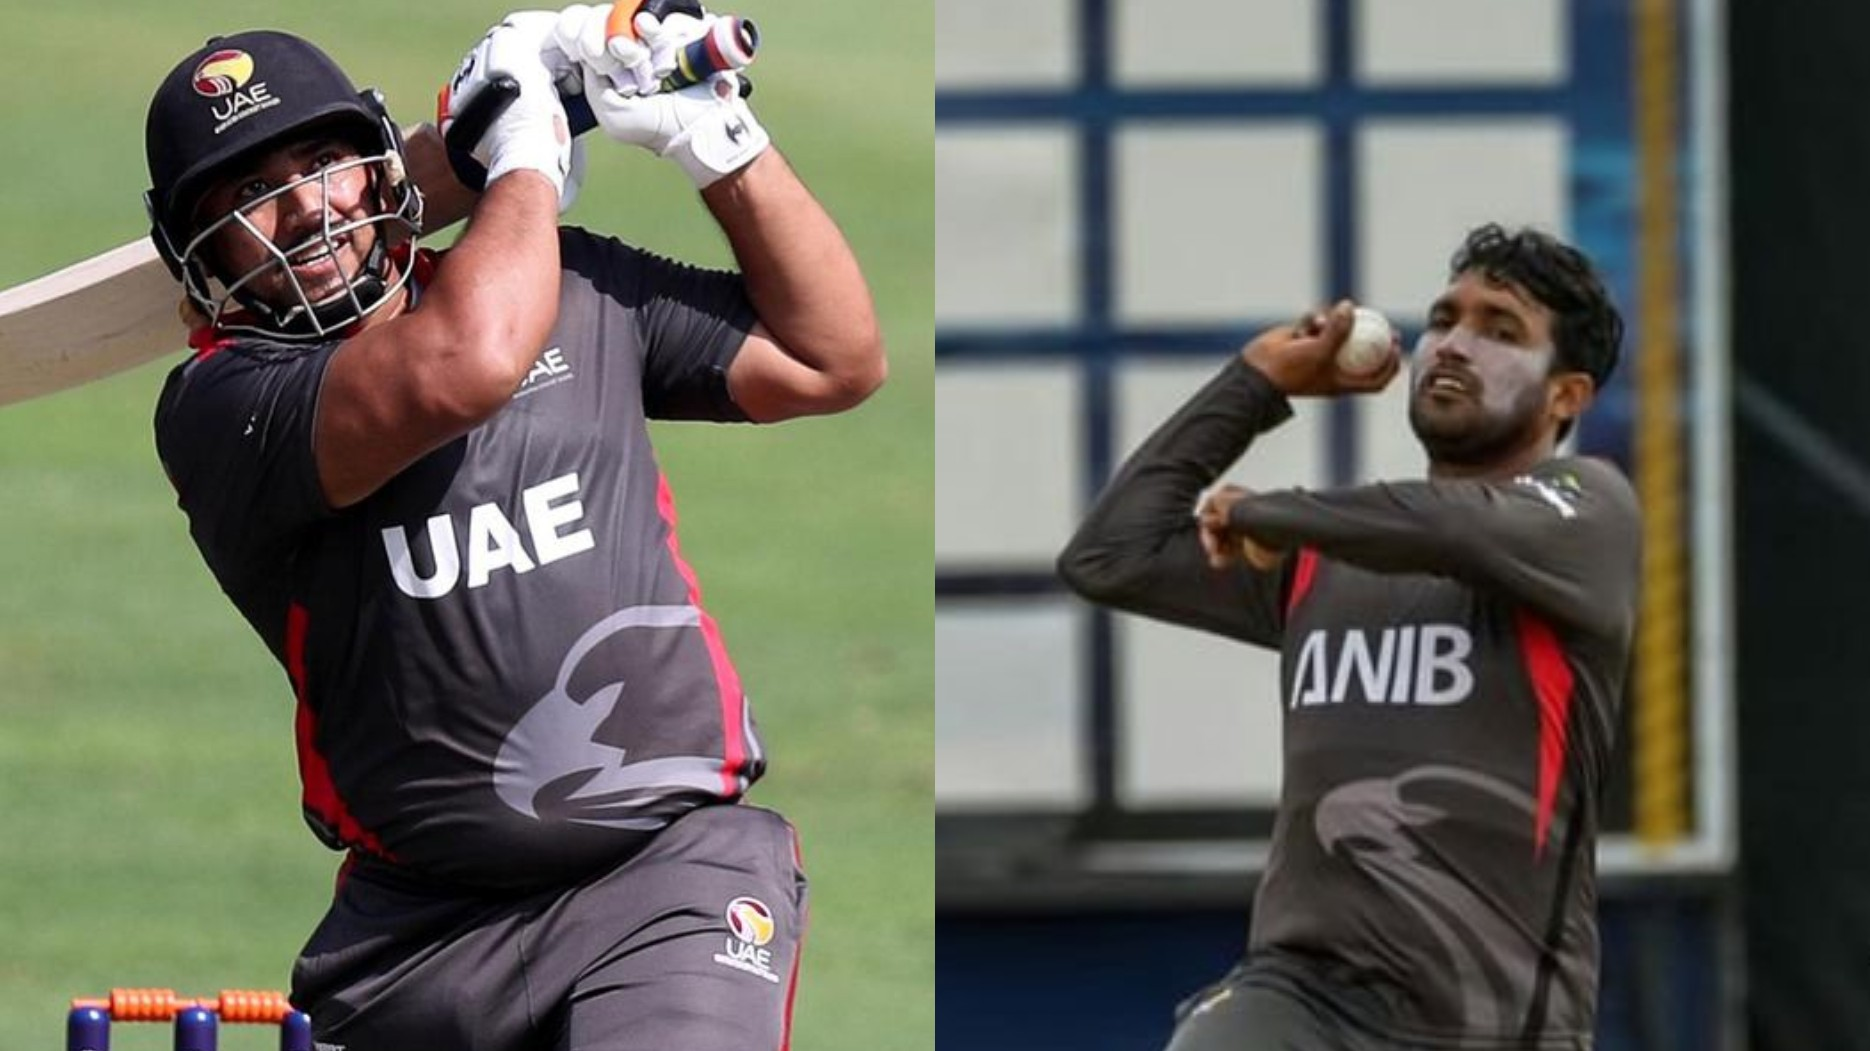 ICC charges UAE's Amir Hayat and Ashfaq Ahmed for breaching the anti-corruption code